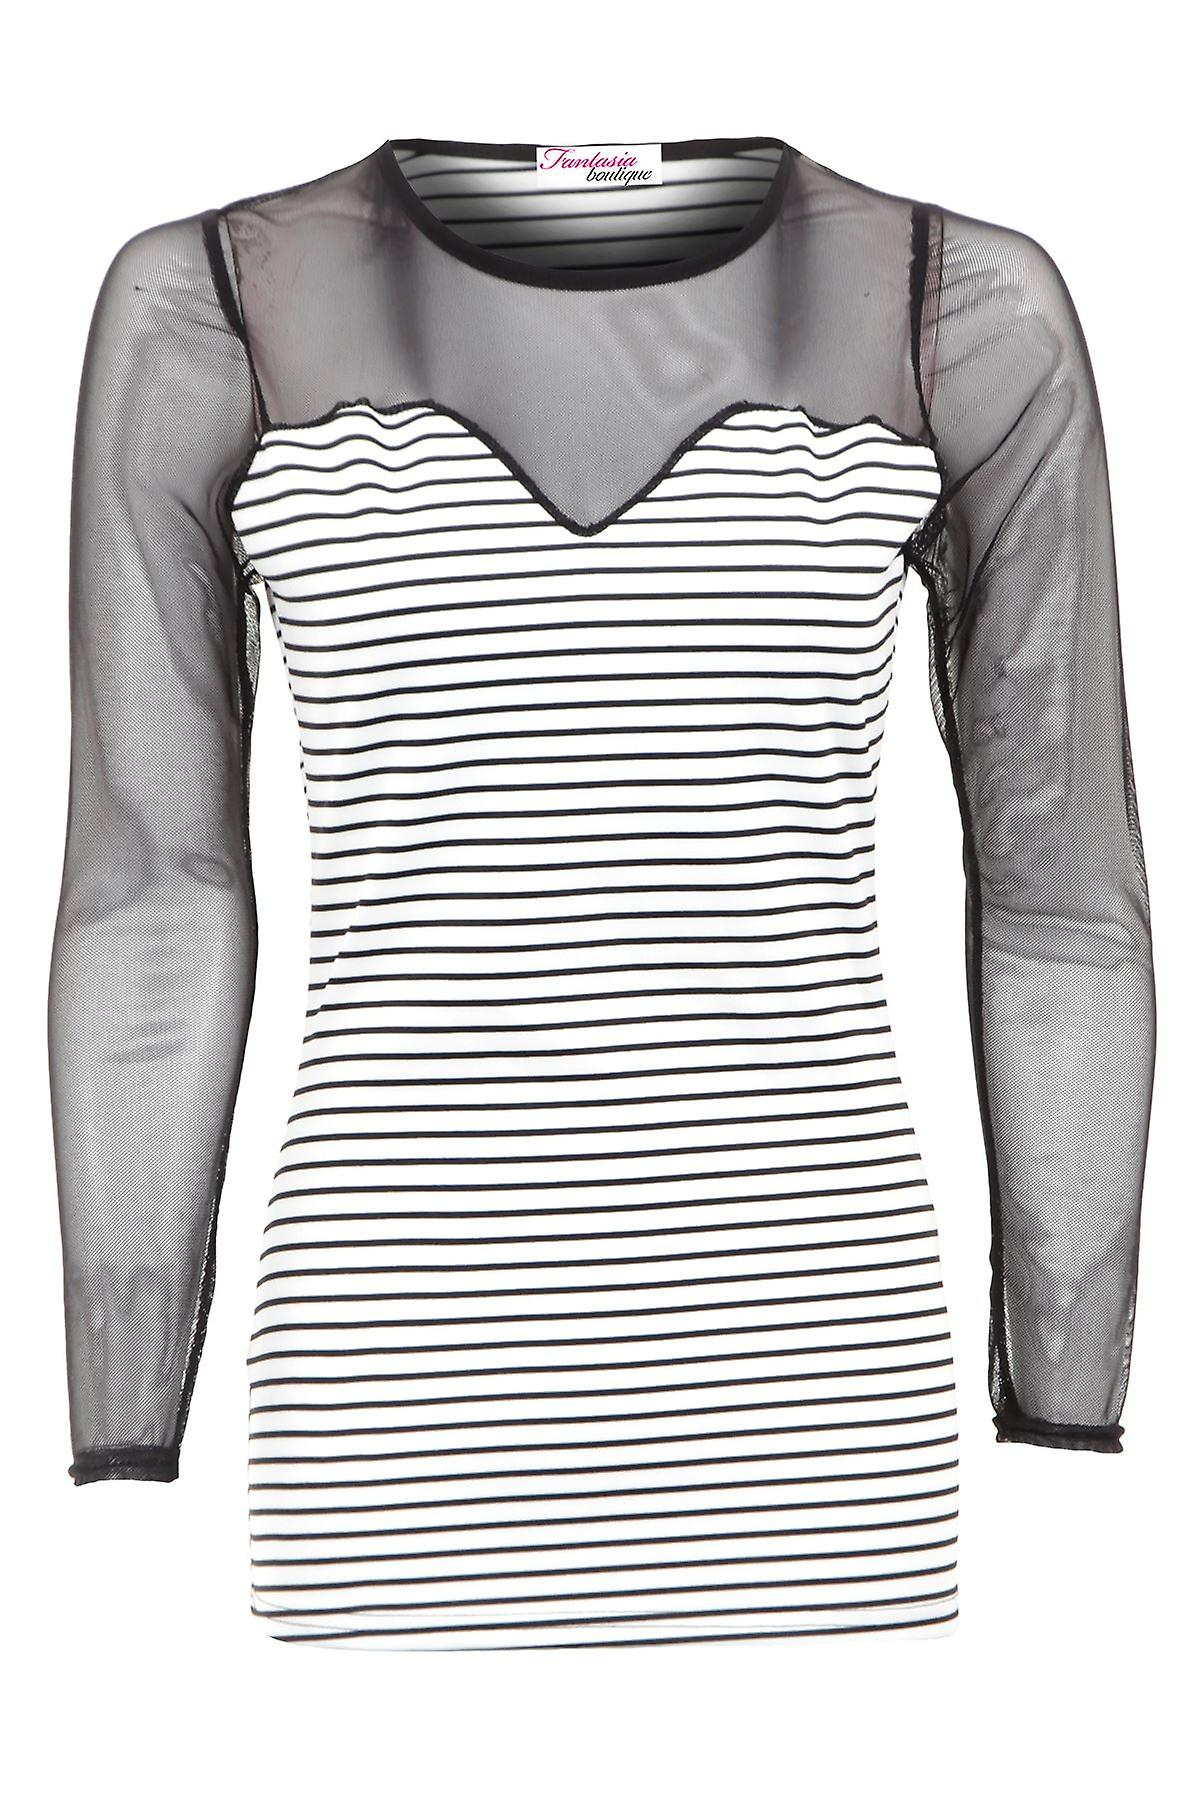 New Ladies Long Mesh Sleeves Black White Striped Women's Top